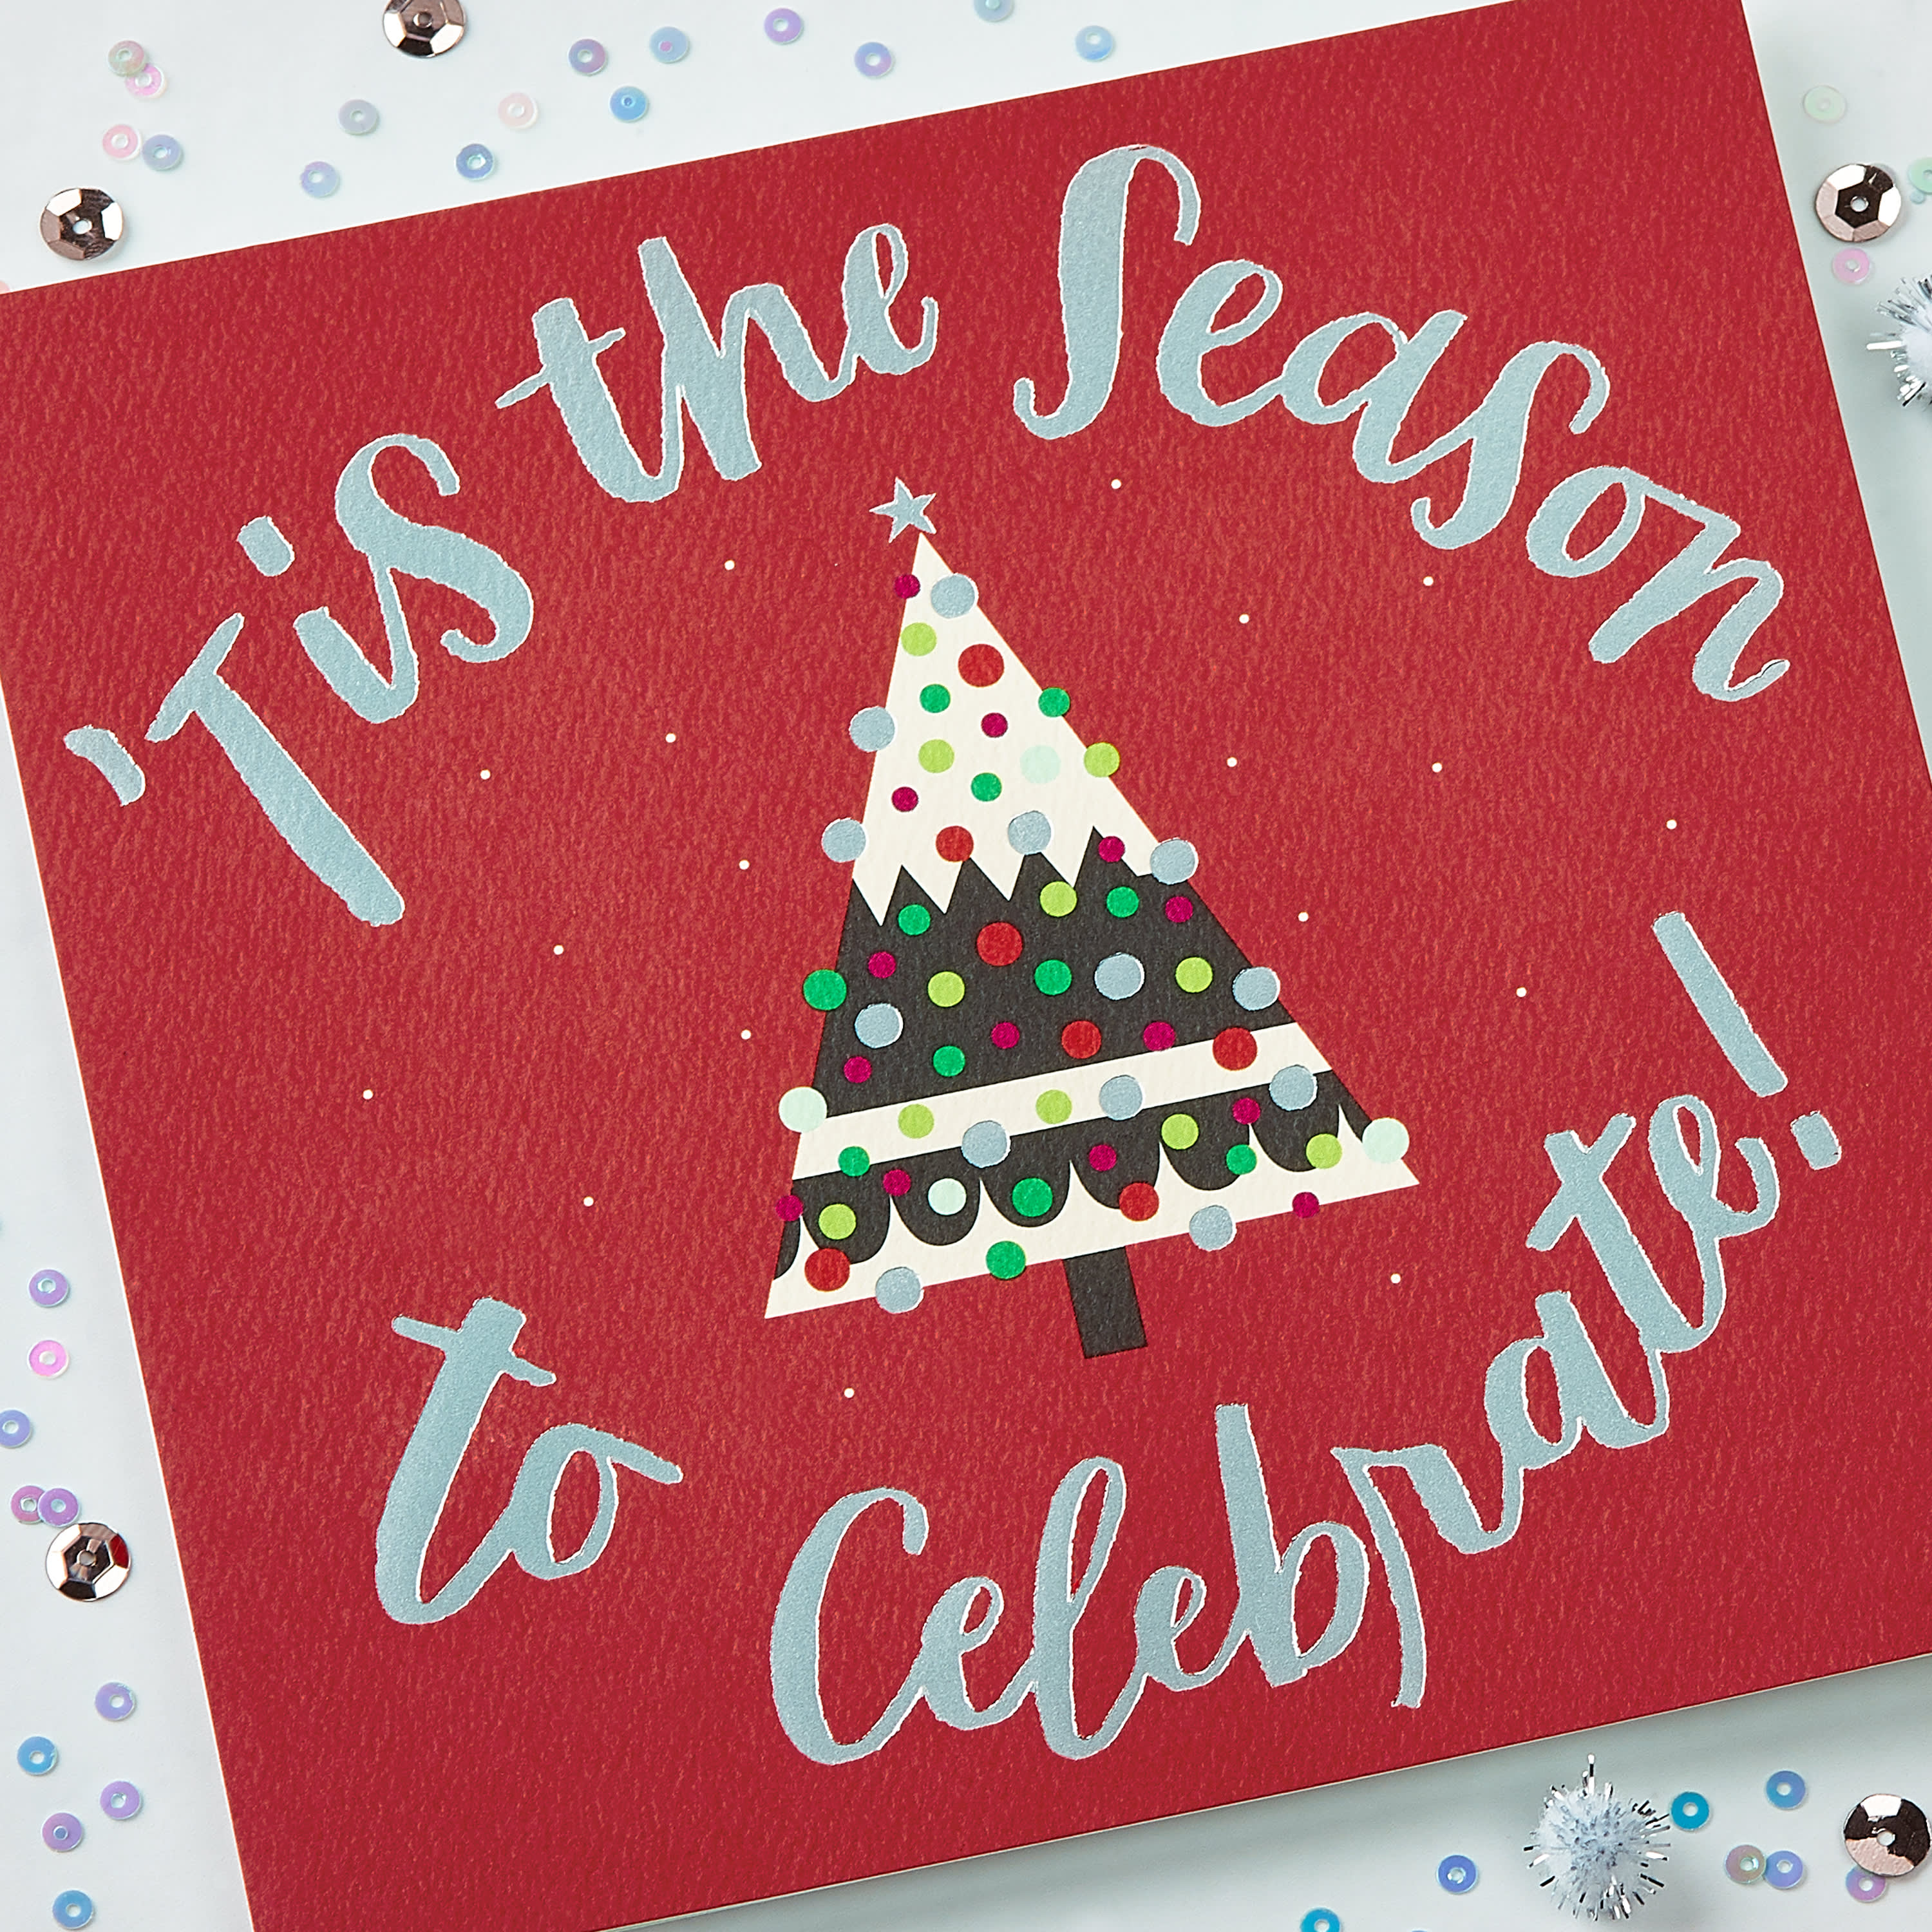 Celebrate Christmas and New Year Greeting Card image